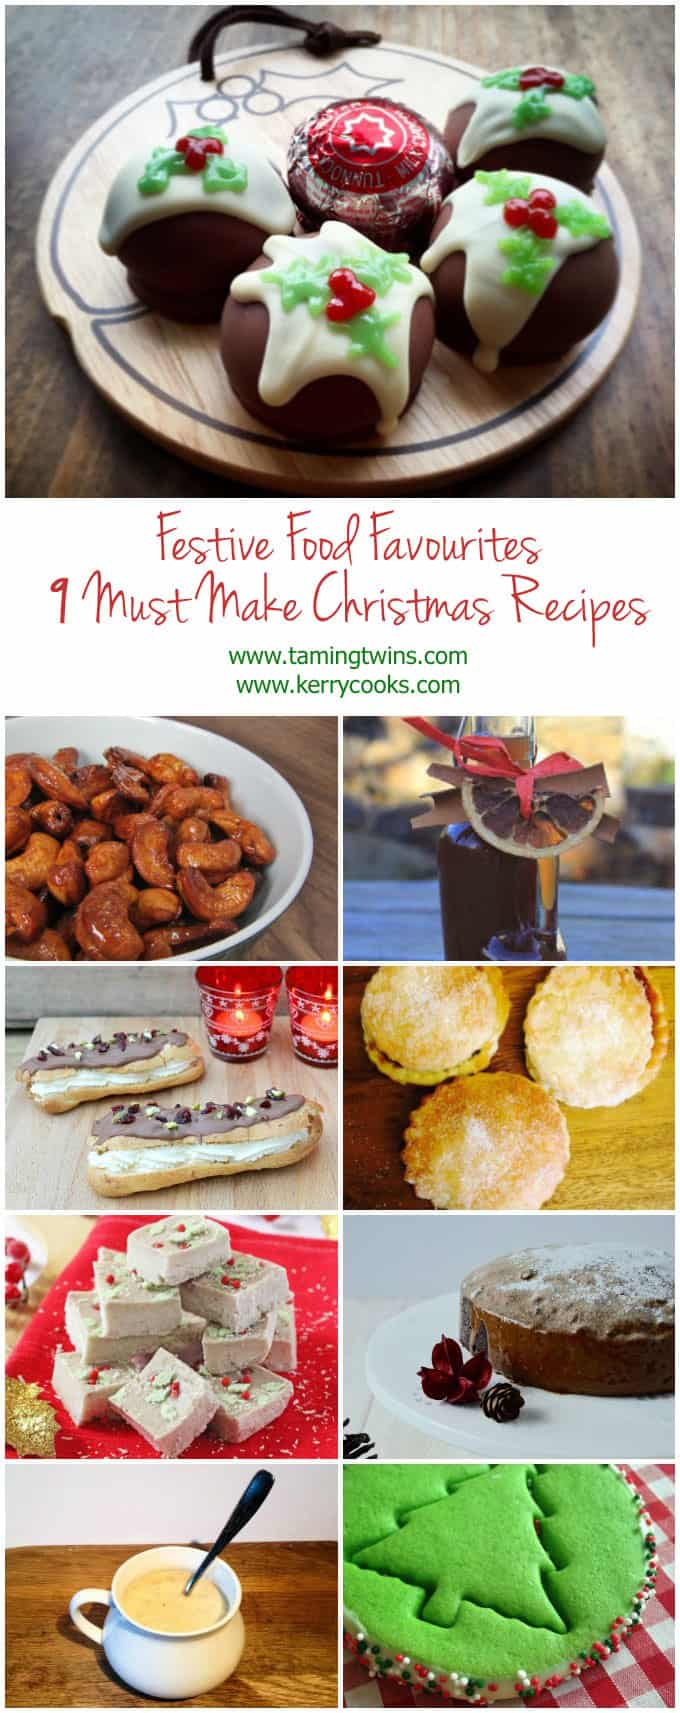 Festive Food Favourites - 9 Must Make Christmas Recipes